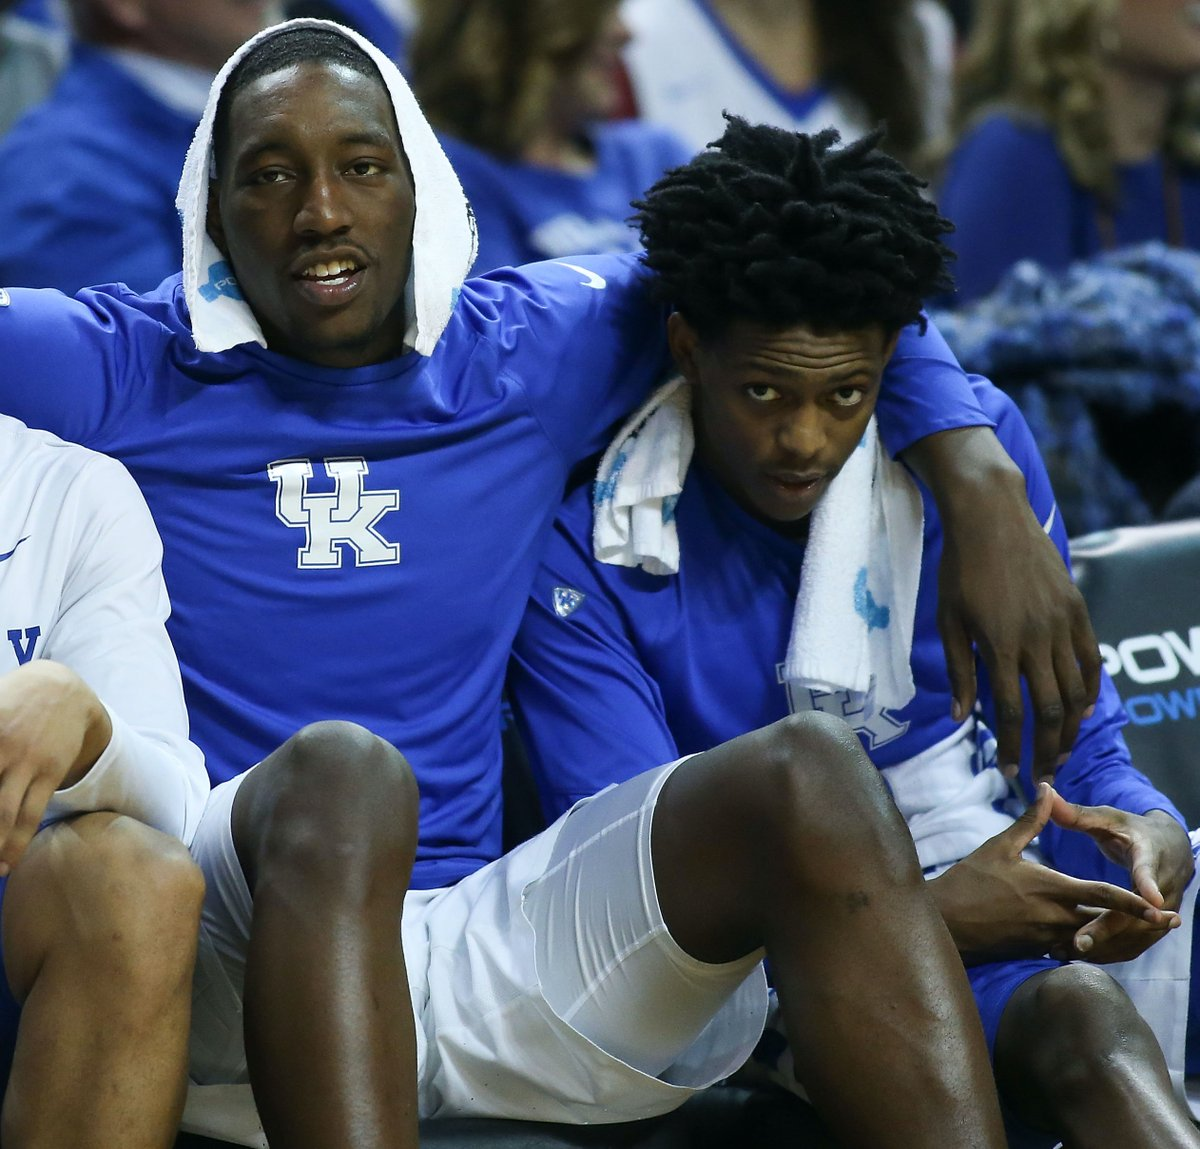 De'Aaron Fox and Bam Adebayo's journey has been special:  -Teammates at Kentucky in 2016-17 -Lost to UNC in Elite Eight in final seconds -Fox picked fifth by Kings, Adebayo picked 14th by Heat in '17 NBA draft -Each signed a $163M max extension   Future is bright 🌟 https://t.co/WoMZ7FWnjS